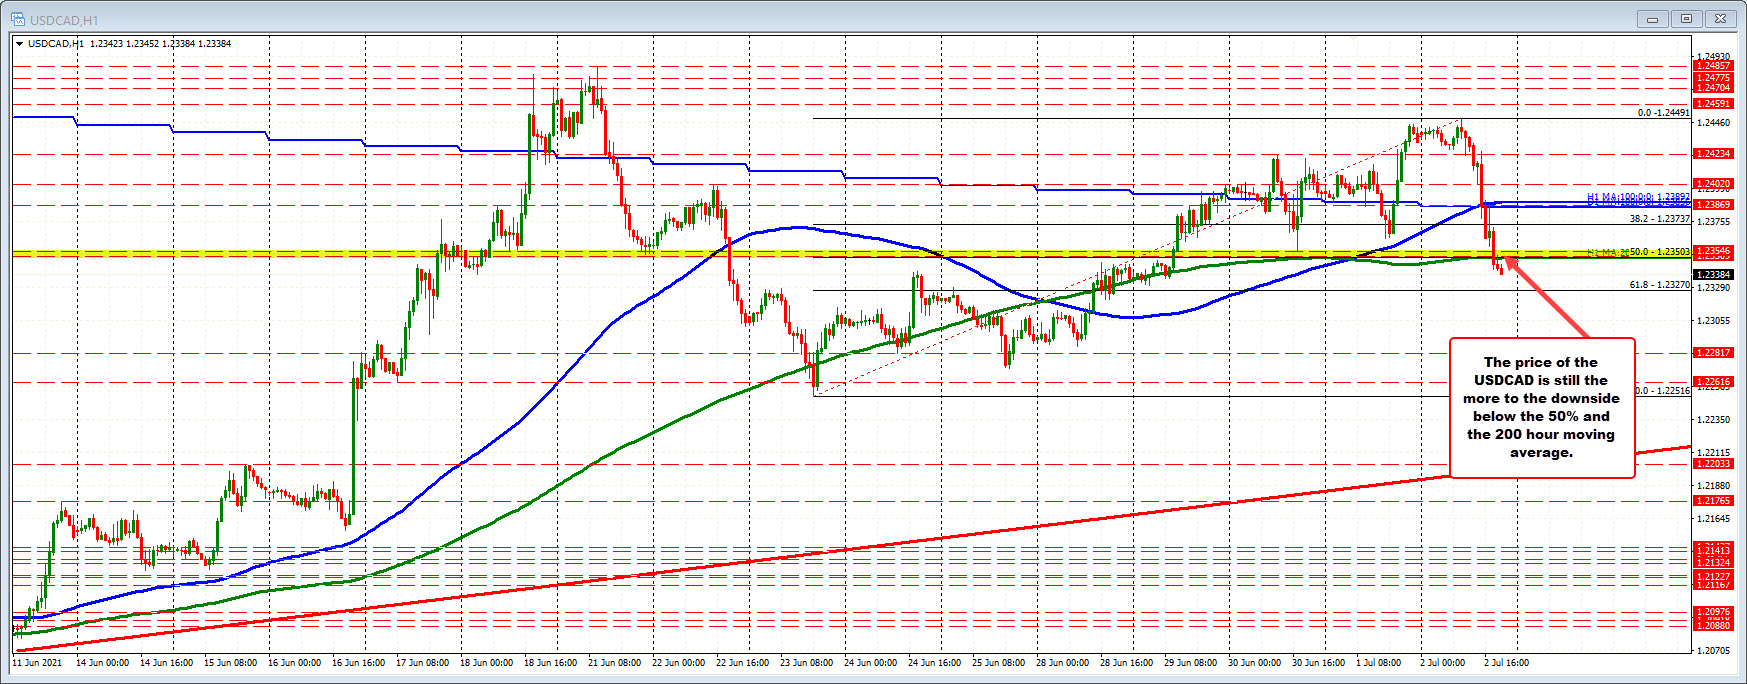 USDCAD on the hourly chart